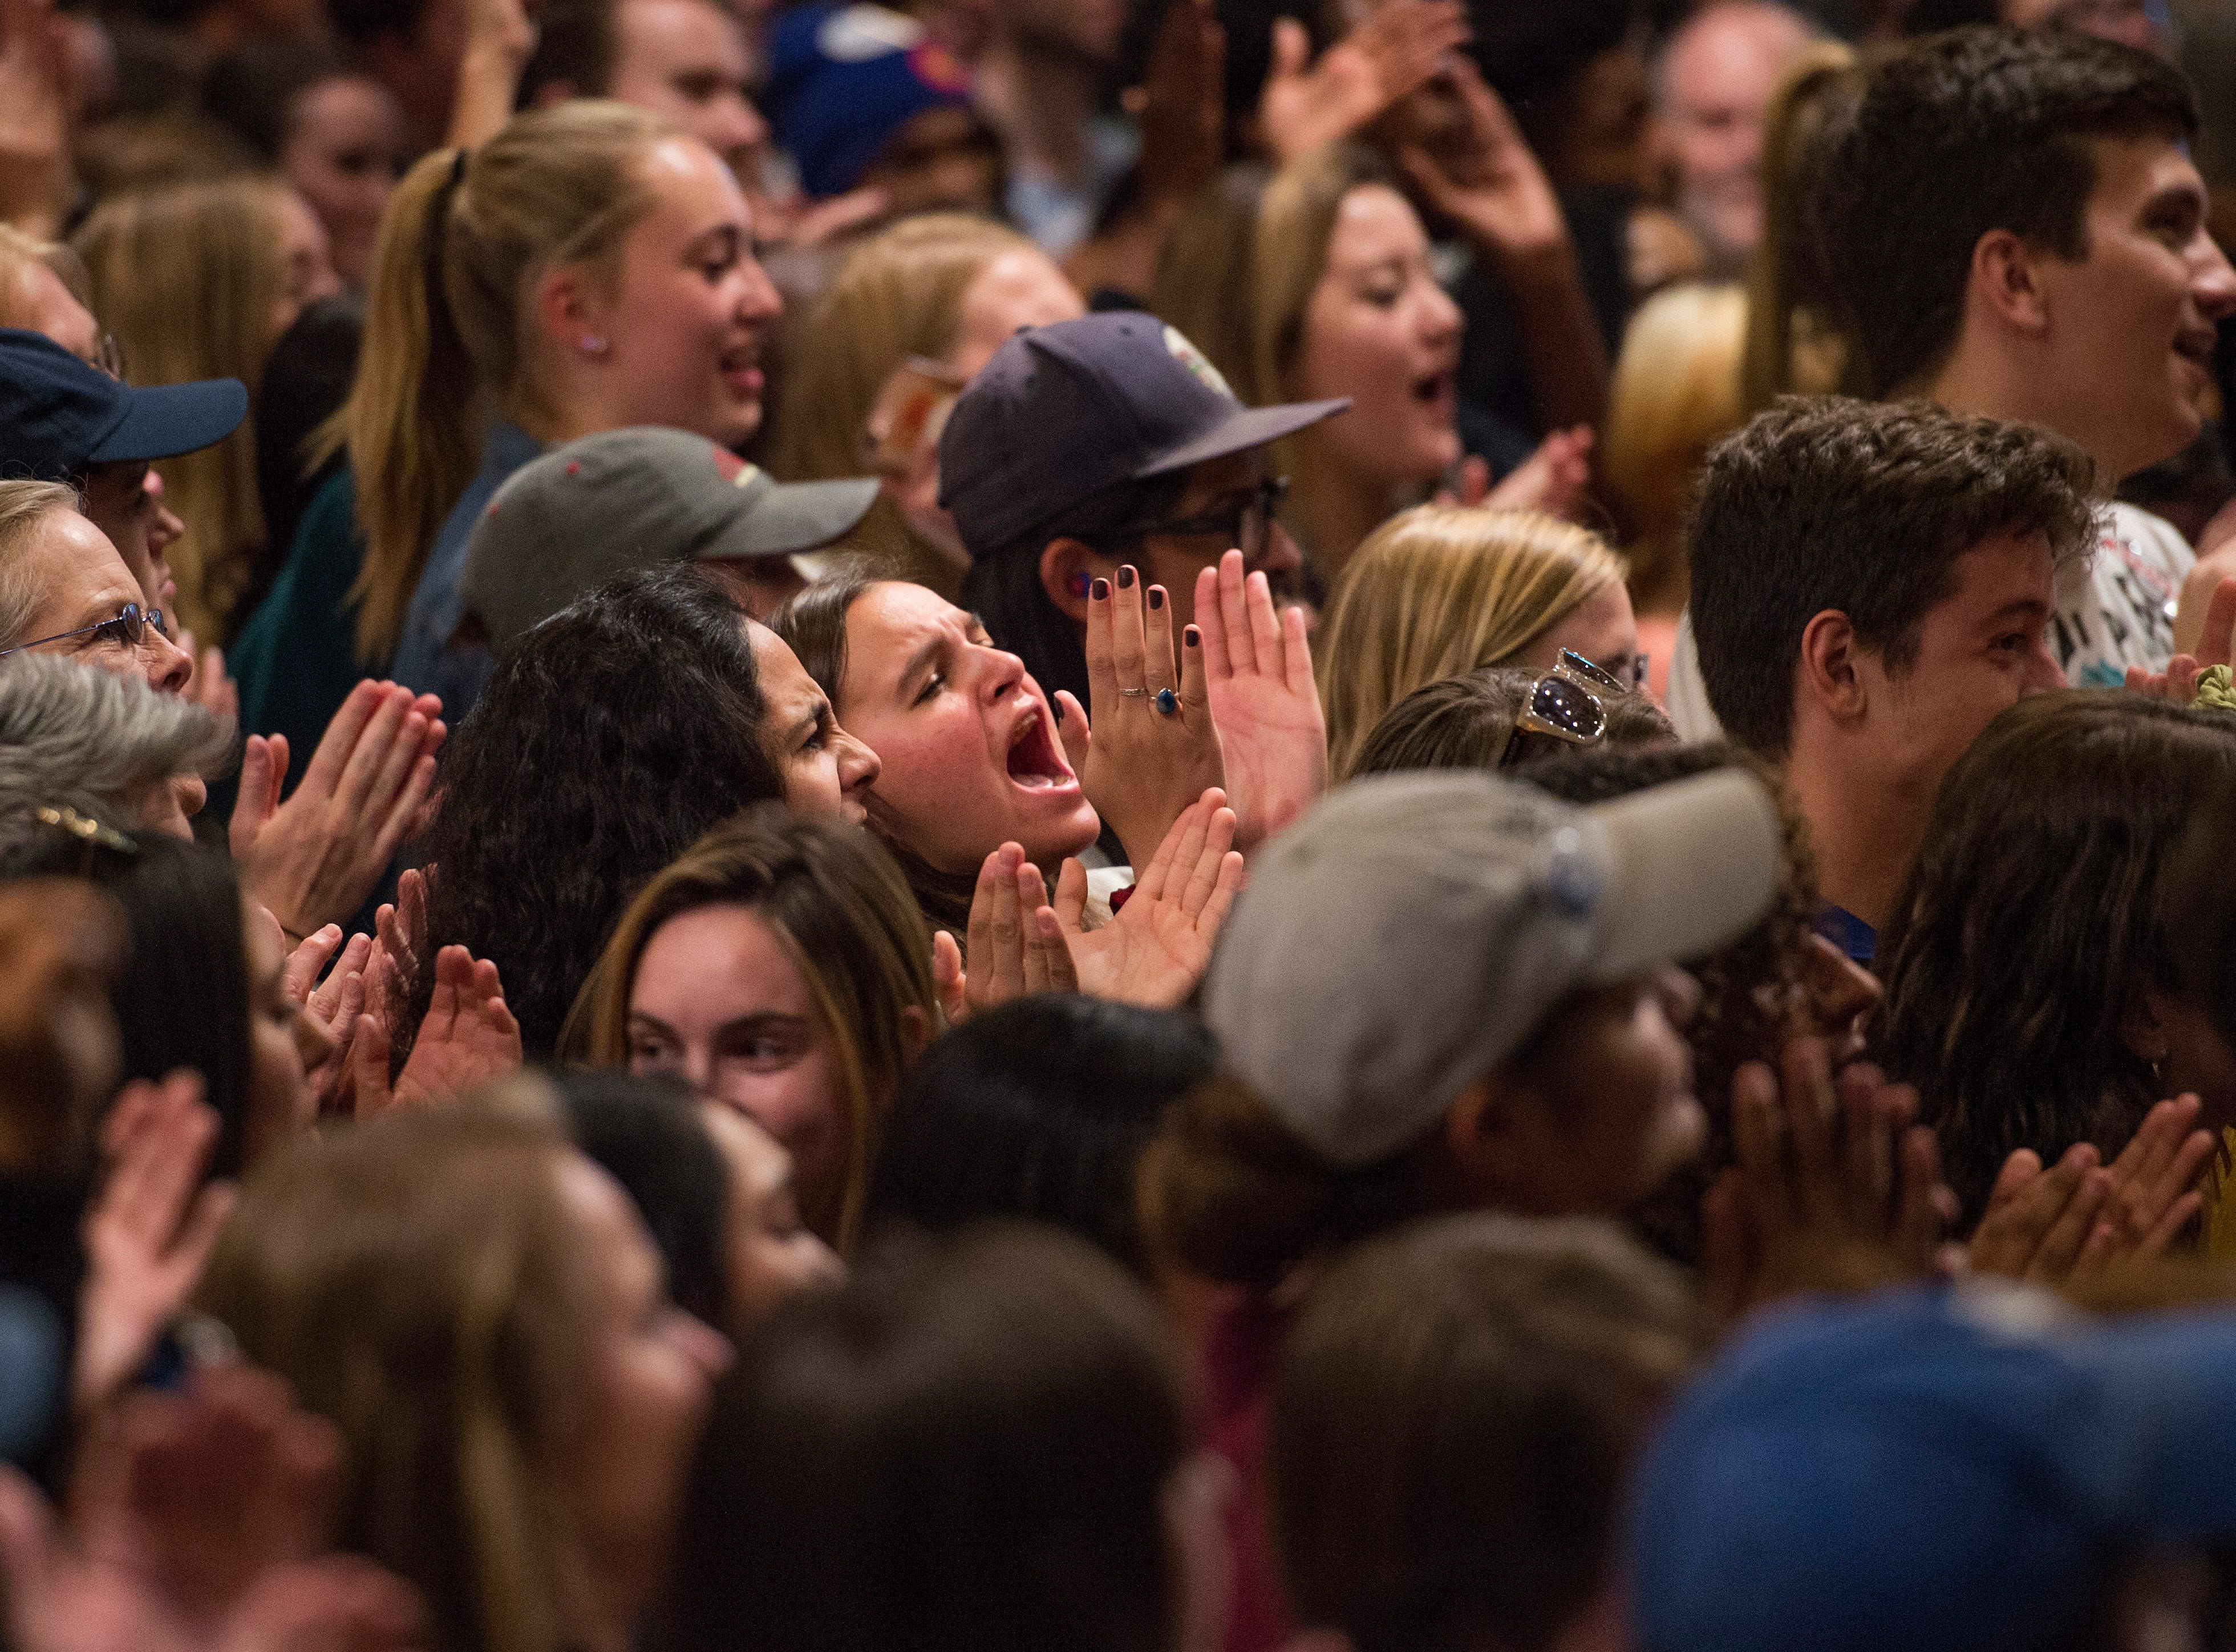 People cheer as U.S. Sen. Bernie Sanders speaks during a rally for Colorado Democrats at the Lory Student Center at CSU on Wednesday, October 24, 2018.